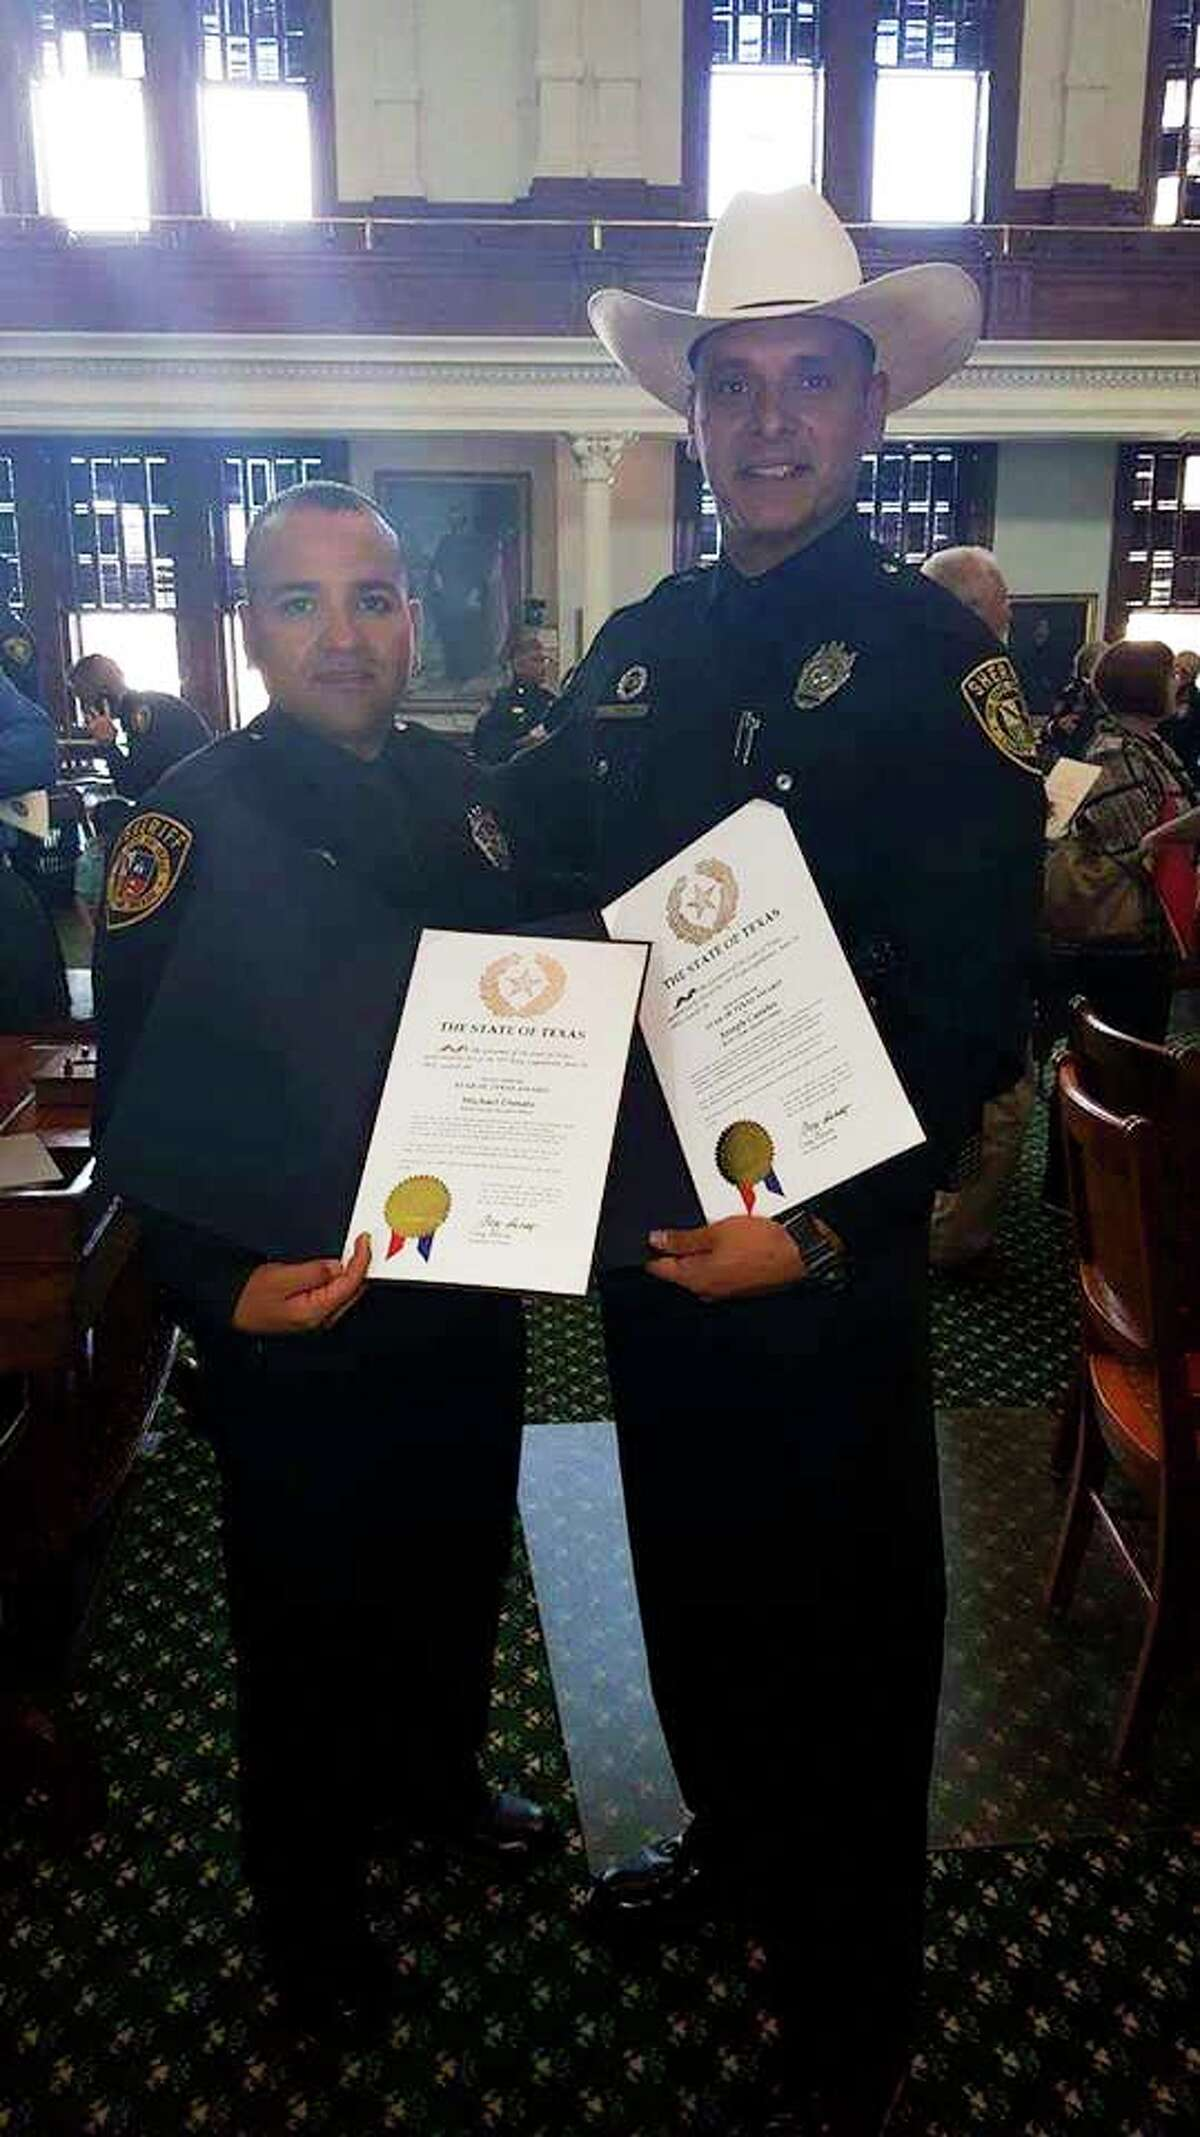 From left: Deputies Michael Donato and Joseph Canales were honored by Gov. Greg Abbott on Sept. 12, 2016, after being shot in the line of duty.